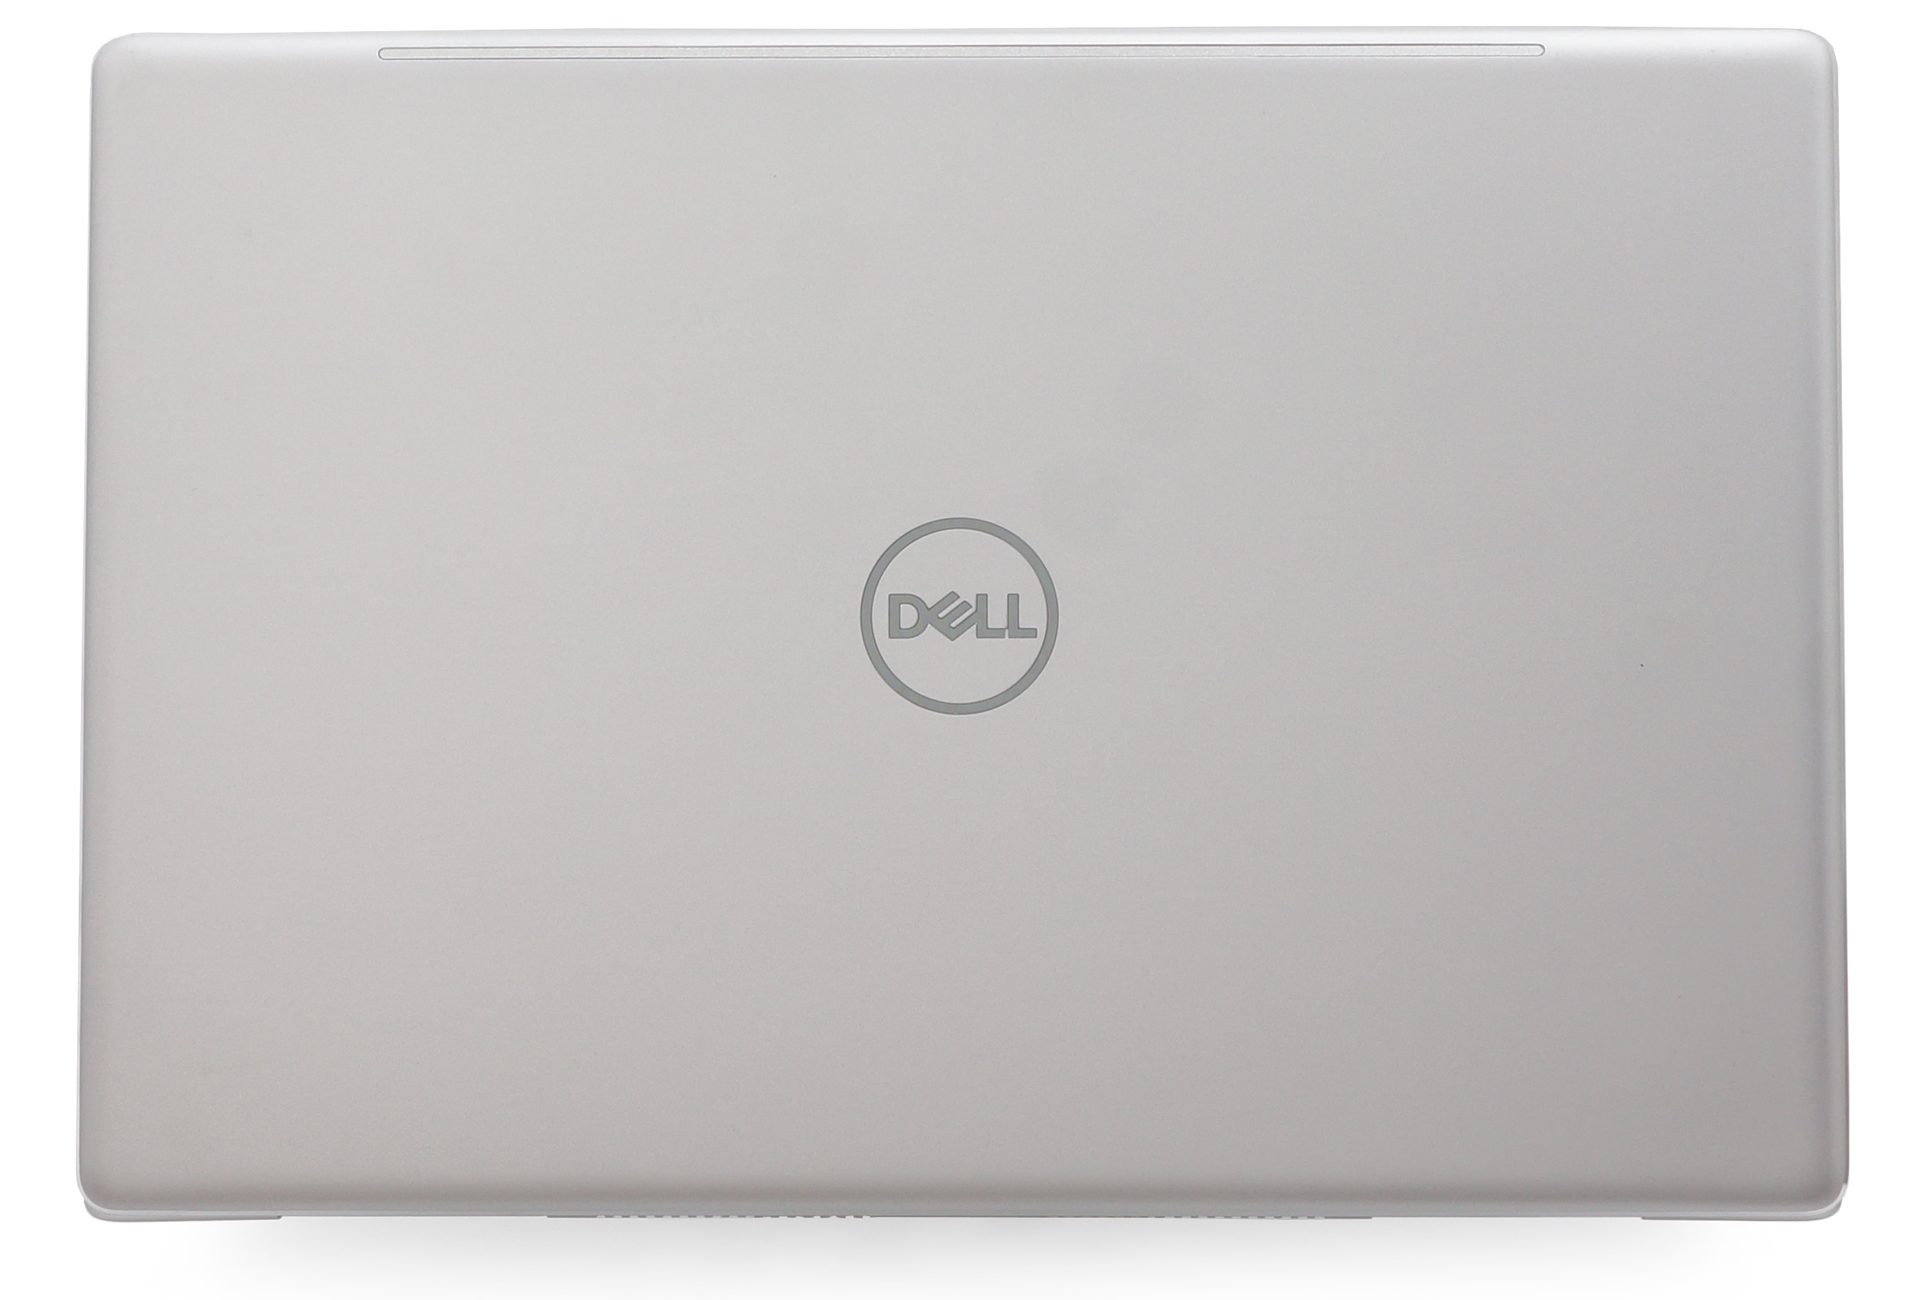 Dell Inspiron 15 7580 review – simple yet powerful